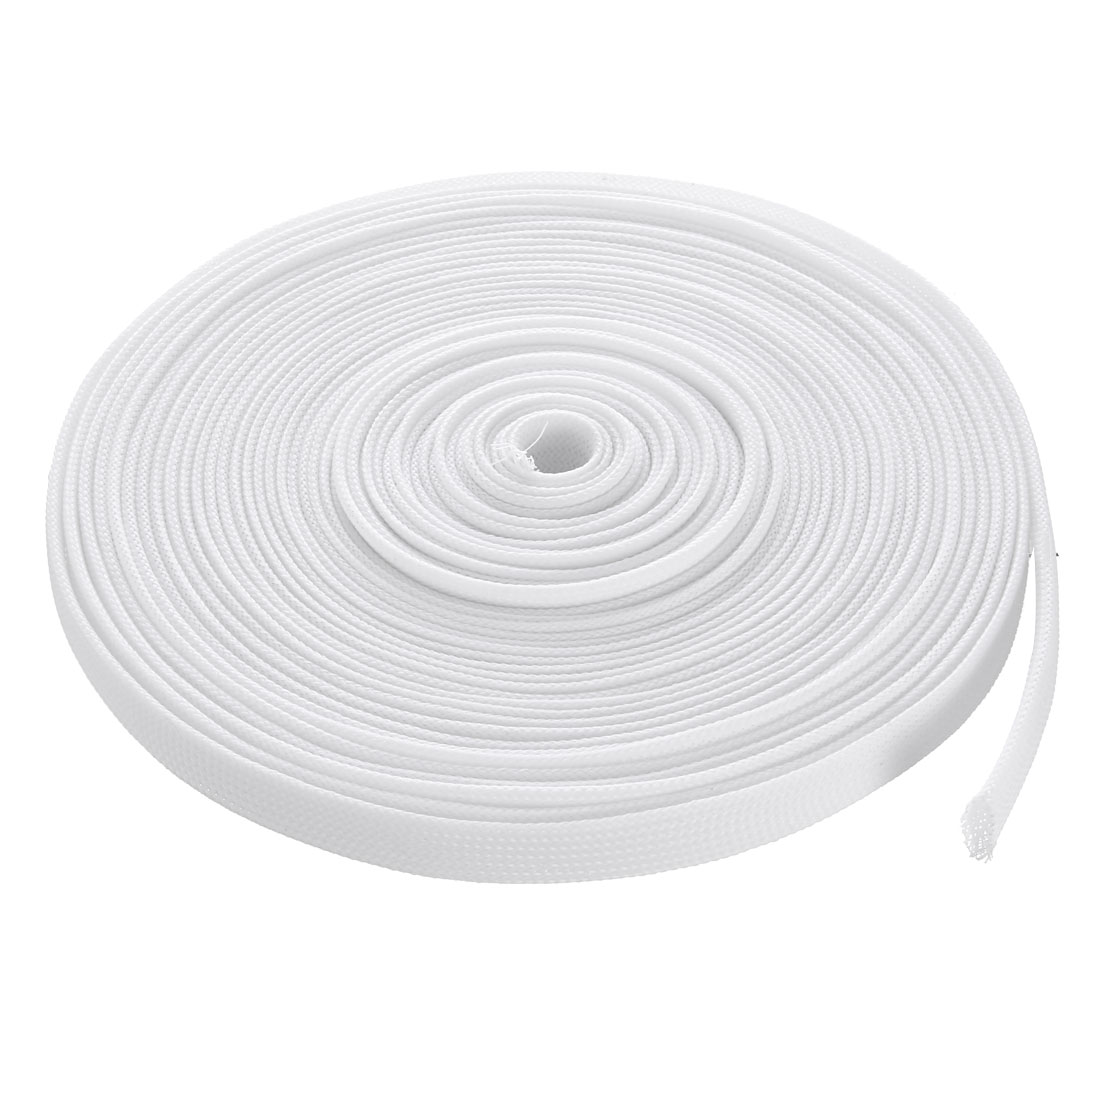 12mm Flat Dia Tight Braided PET Expandable Sleeving Cable Wrap Sheath White 10M